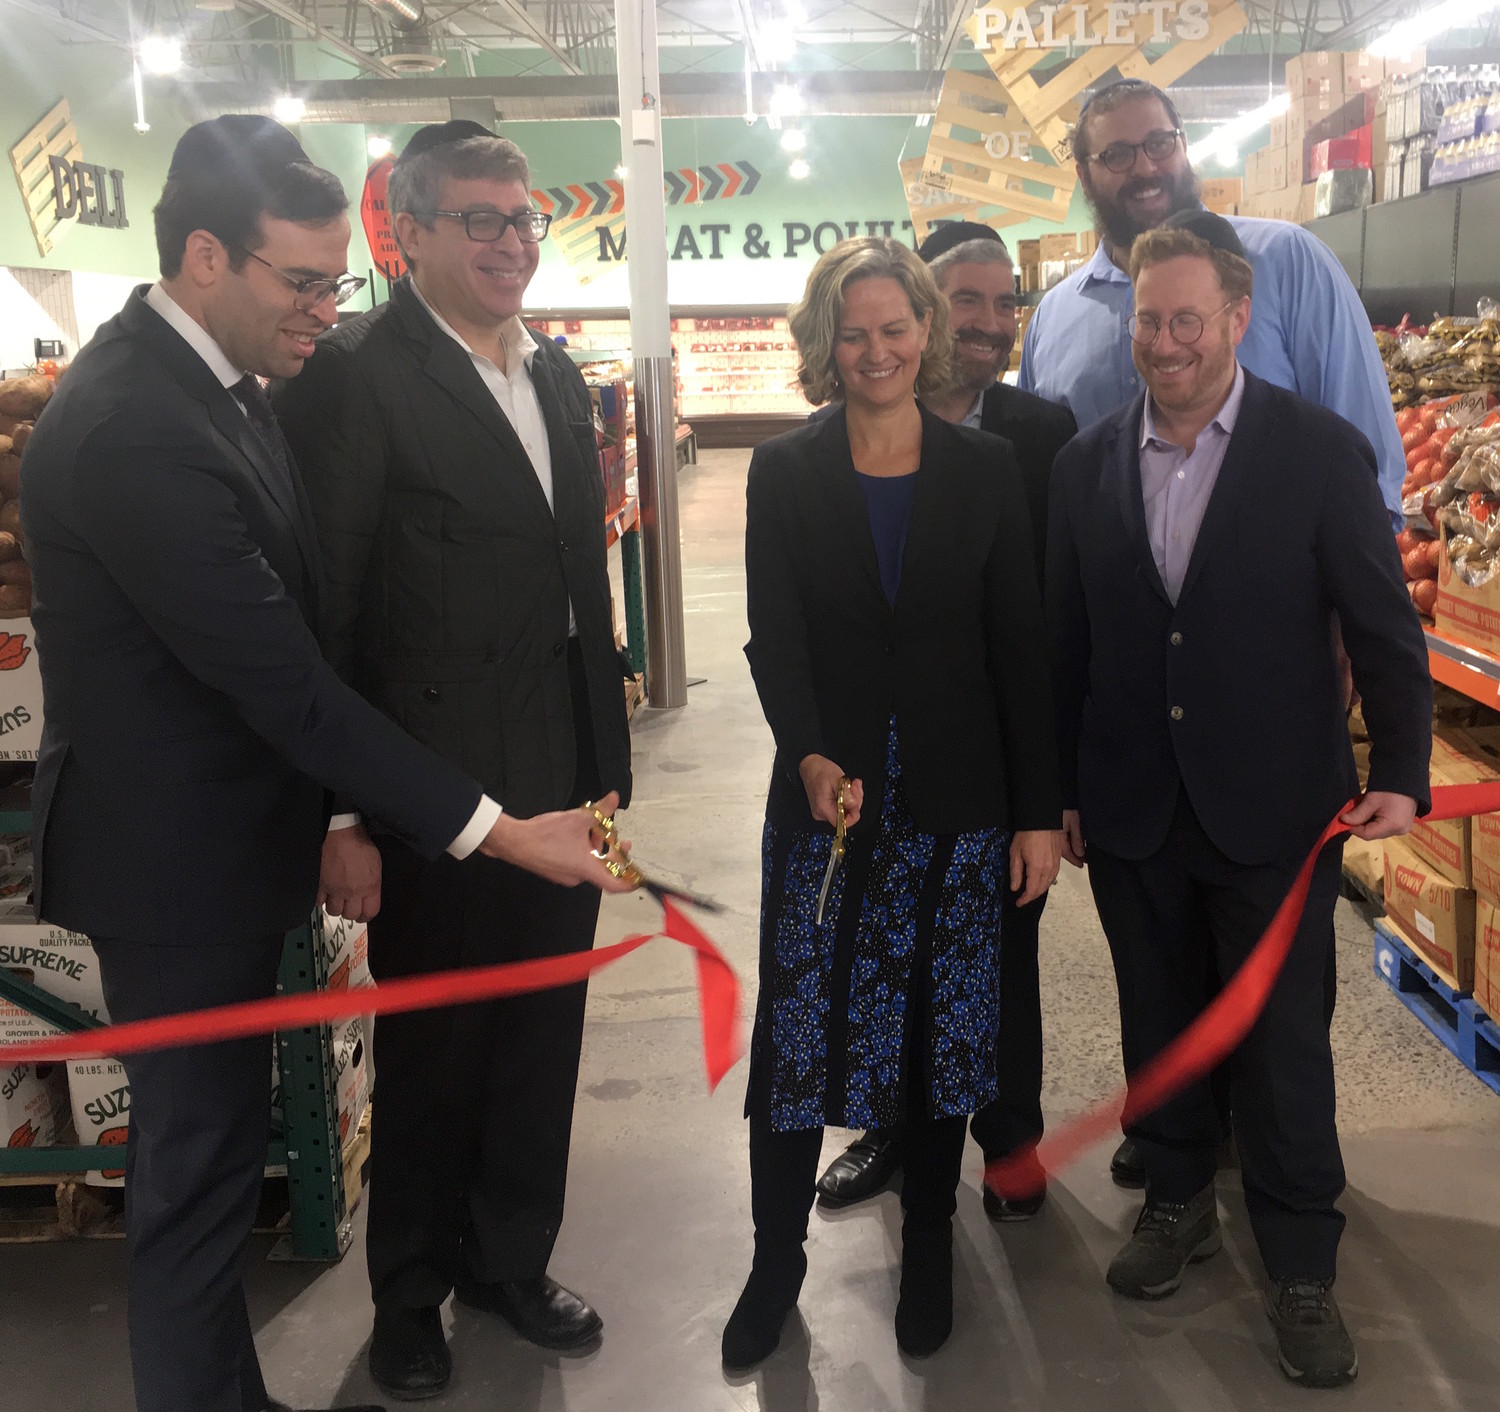 As the ribbon is cut at the opening of KolSave Market on Monday, Nassau County Executive Laura Curran is flanked (from left) by Achiezer Founder and President Rabbi Boruch Ber Bender, Gourmet Glatt's Yoeli Steinberg, Howie Klagsburn and Moshe Ratner, and (in back at right) KolSave store manager Mendy Herz.